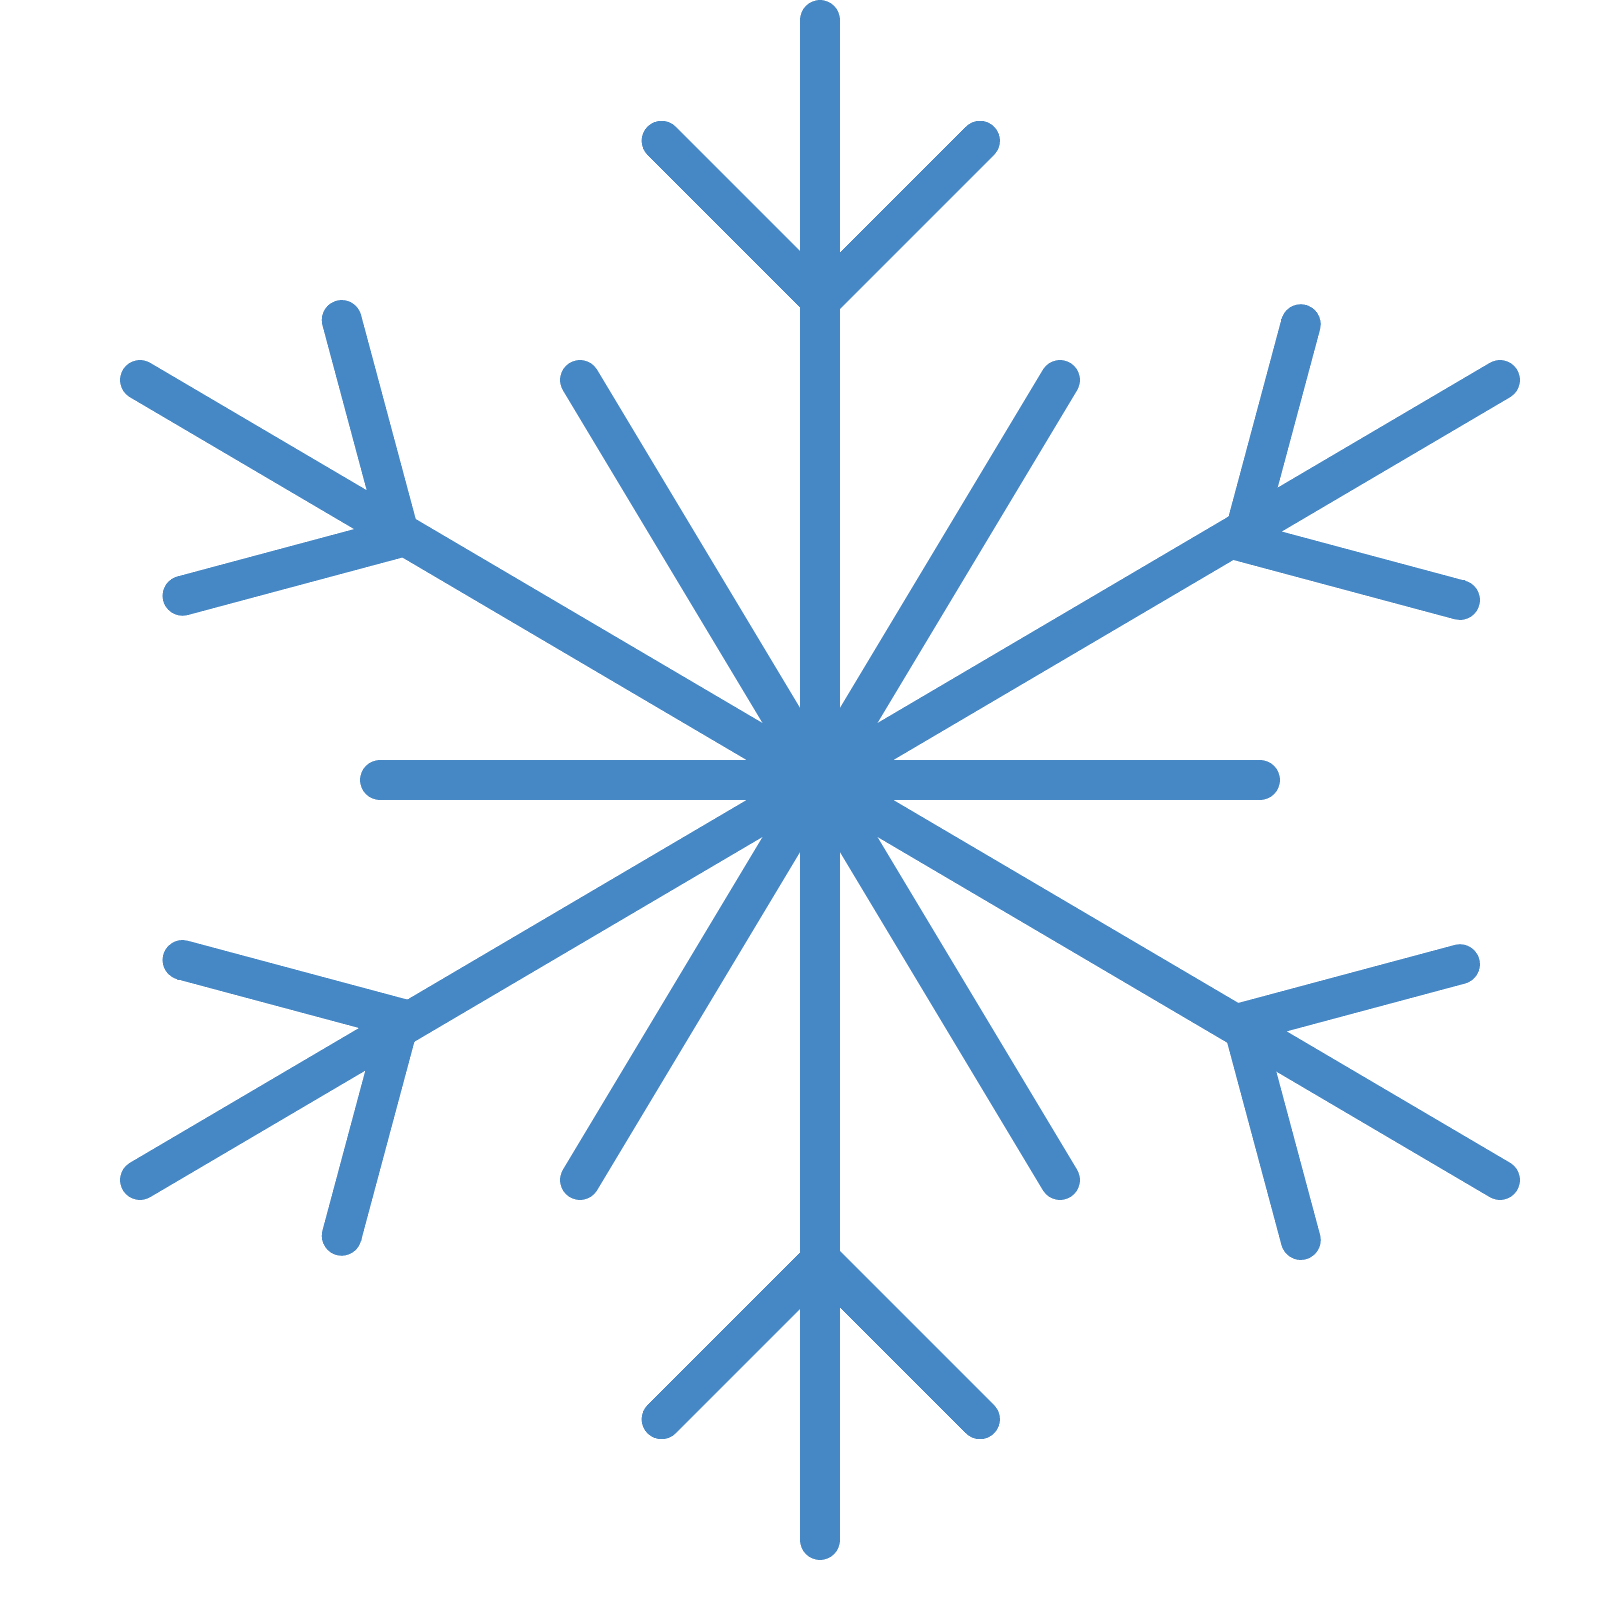 Winter png images. Icon free download and